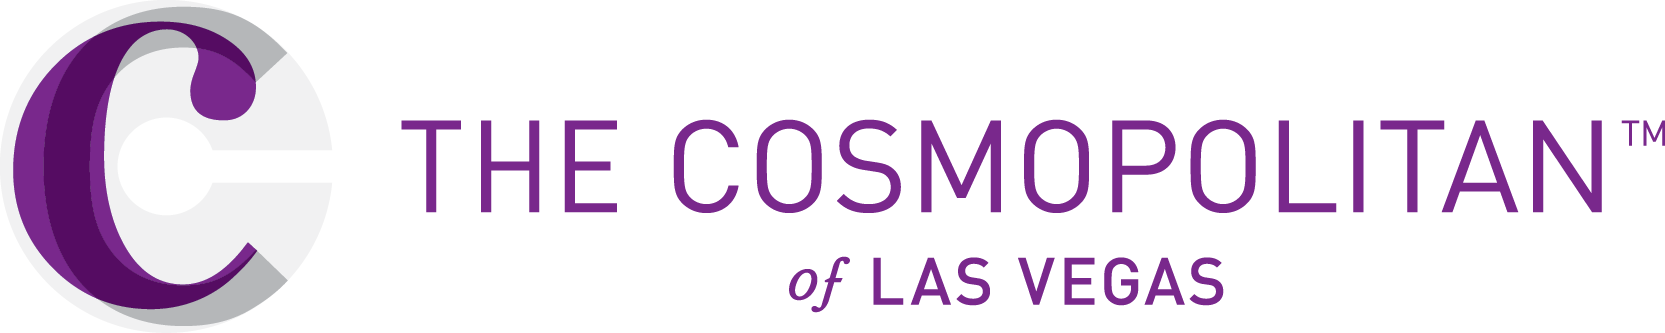 1f The Cosmopolitan of Las Vegas